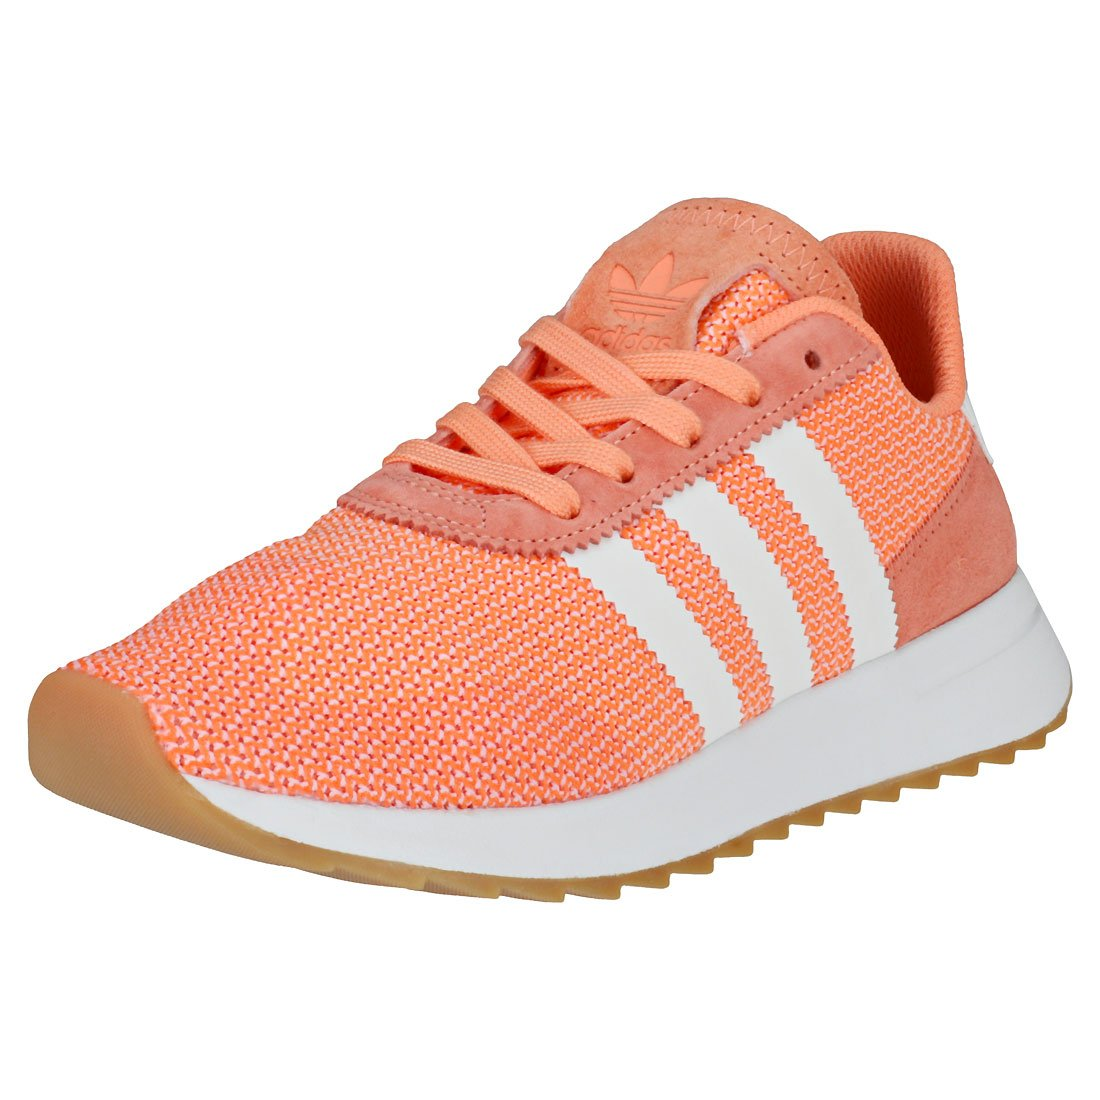 8c0df4145 adidas Women s FLB Runner Trainers  Amazon.co.uk  Shoes   Bags